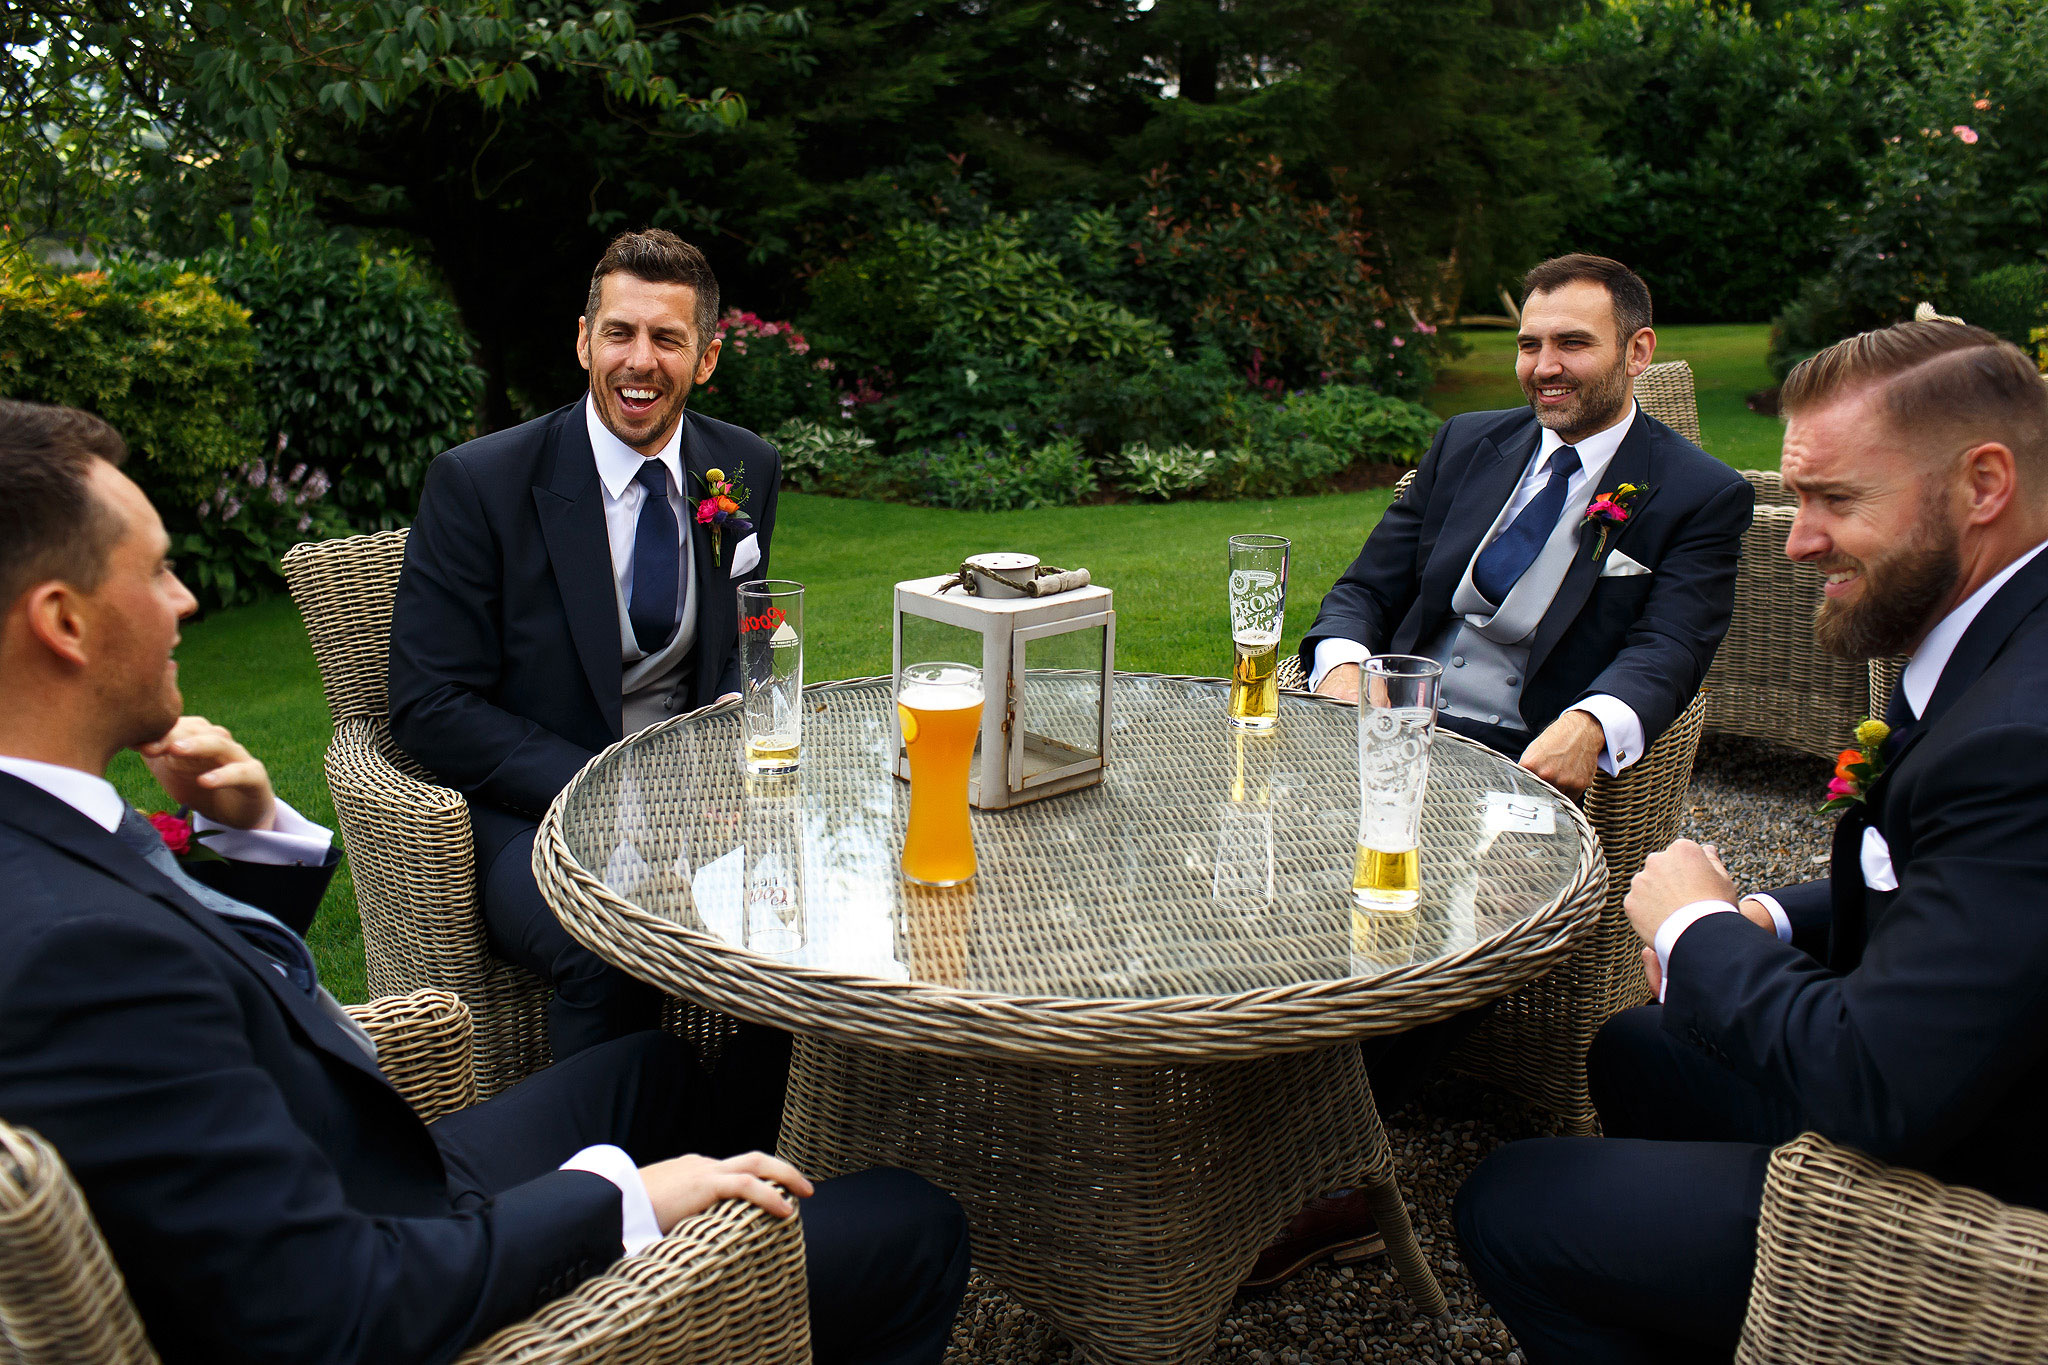 Groom and groomsmen drinking a beer in the garden at Shireburn Arms